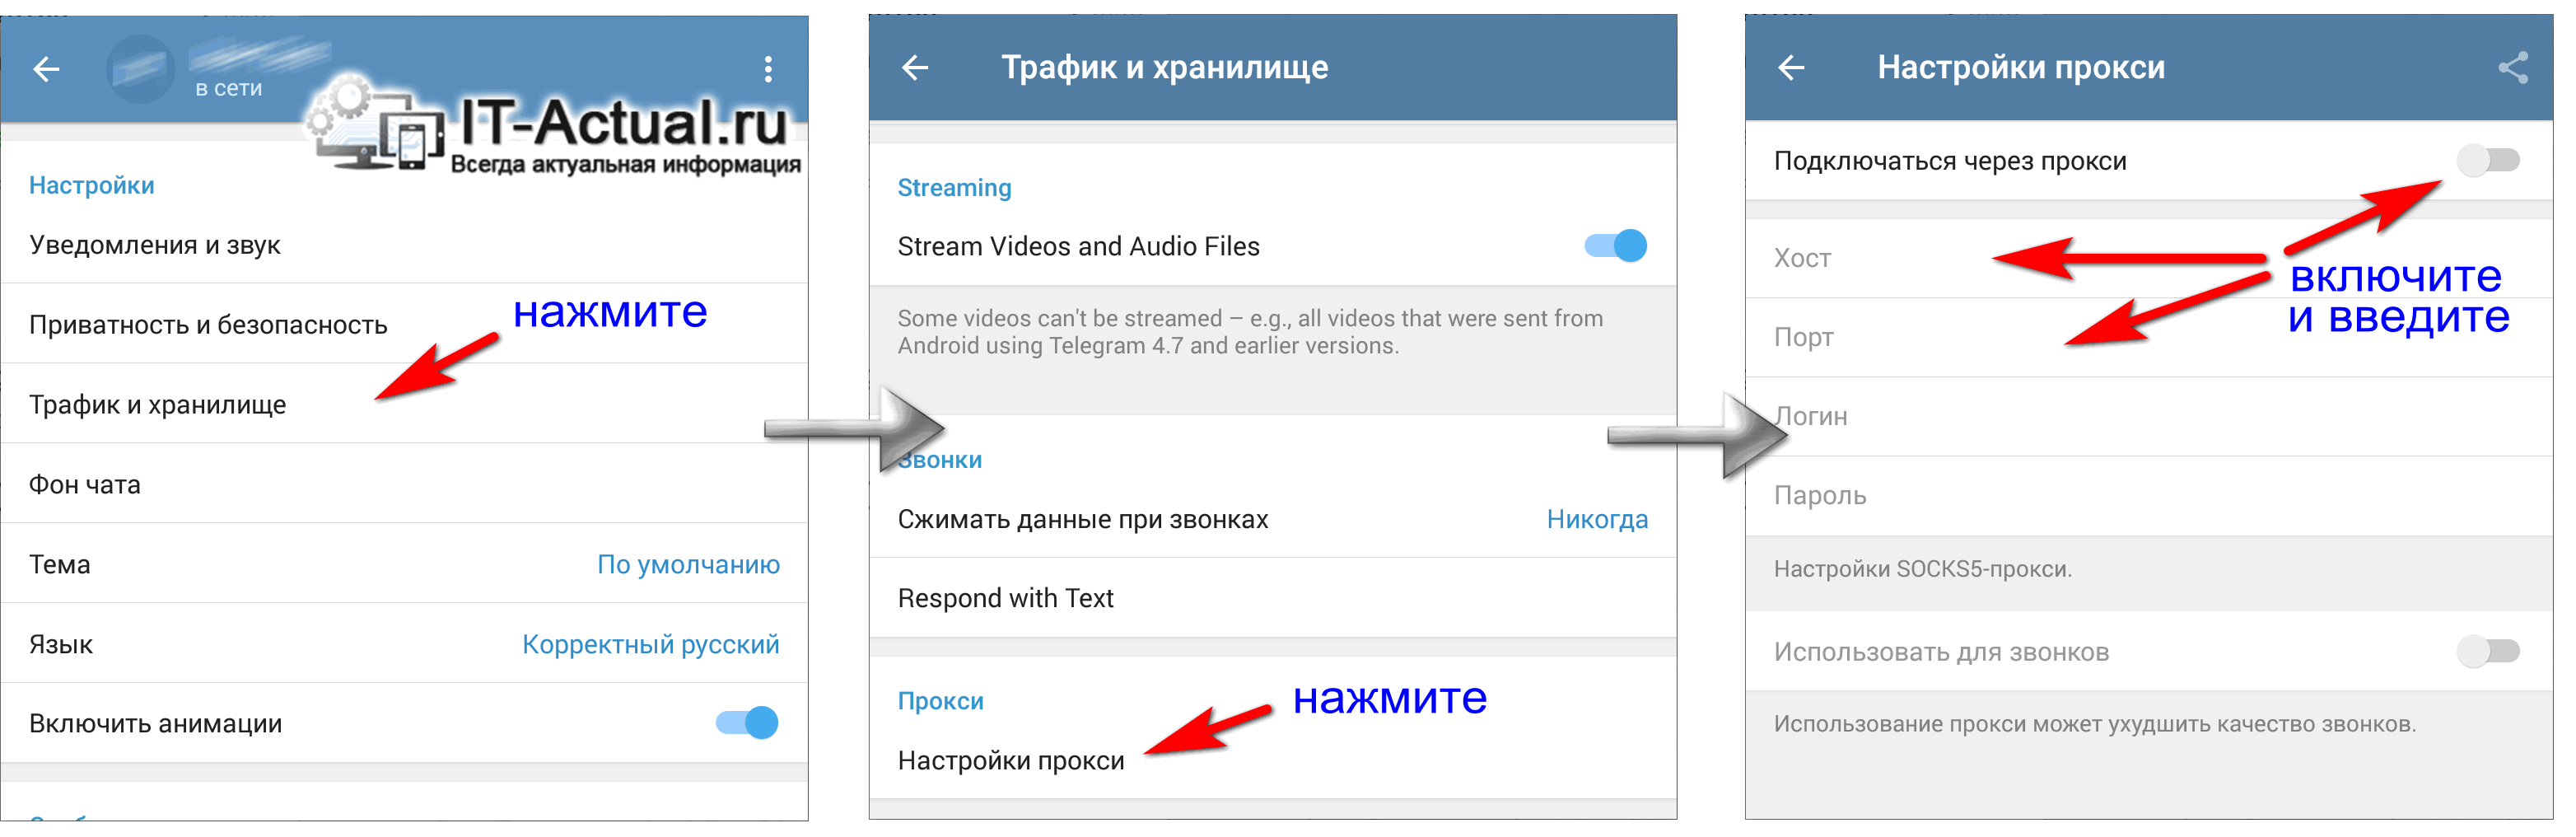 How-to-fix-problems-with-connect-Telegram-3.png